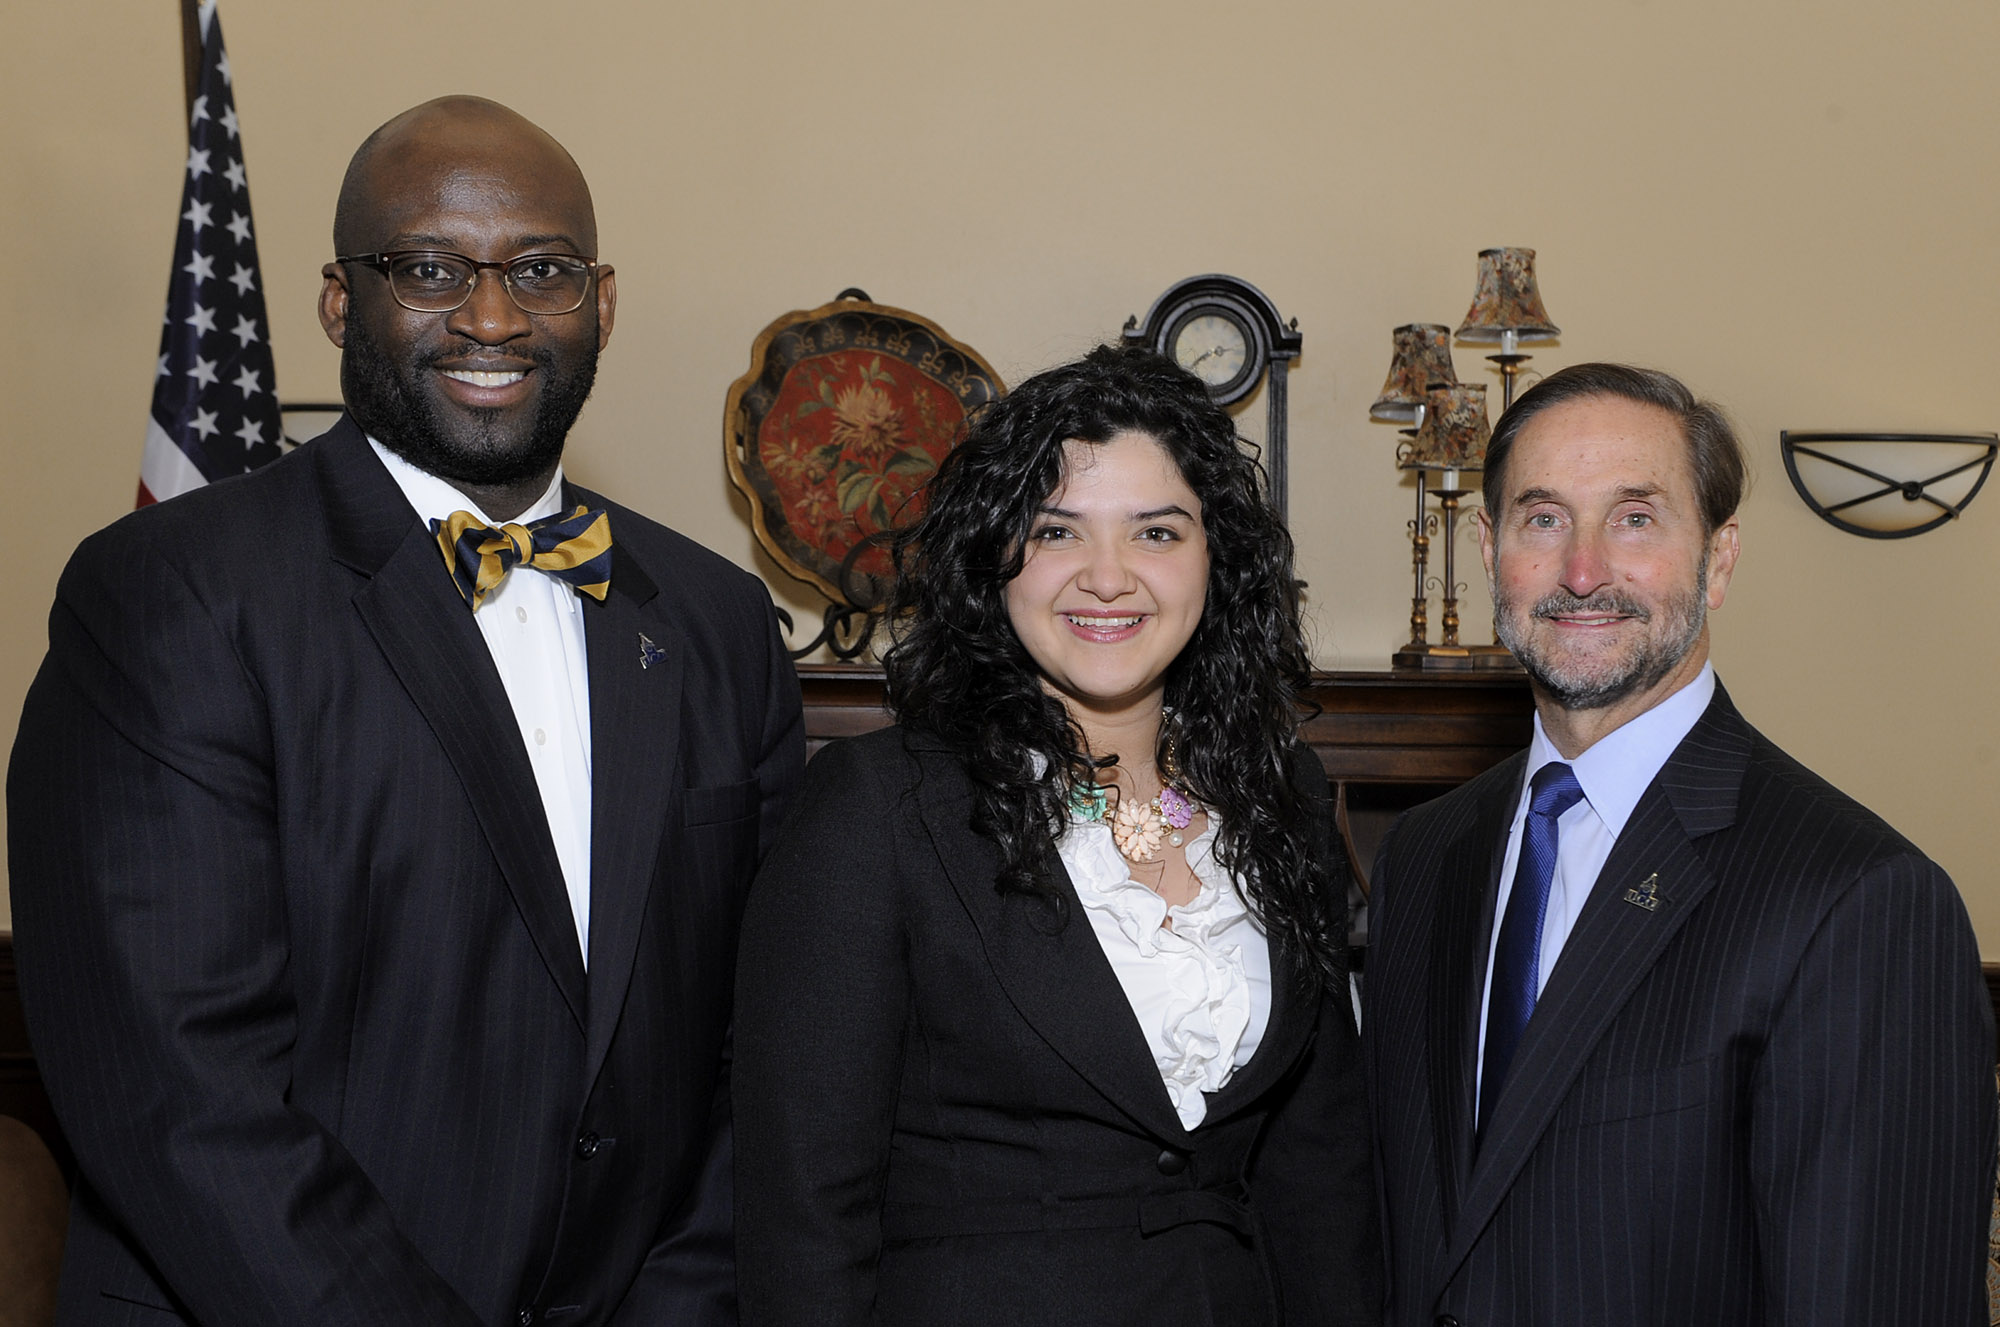 University of Central Oklahoma student and 2014 Newman Civic Fellow Elizabeth Larios stands with Central President Don Betz, Ph.D., (right) and Vice President for Student Affairs Myron Pope, Ed.D., (left). Larios was nominated for the award in recognition of her work in advocating for women's education and empowerment.